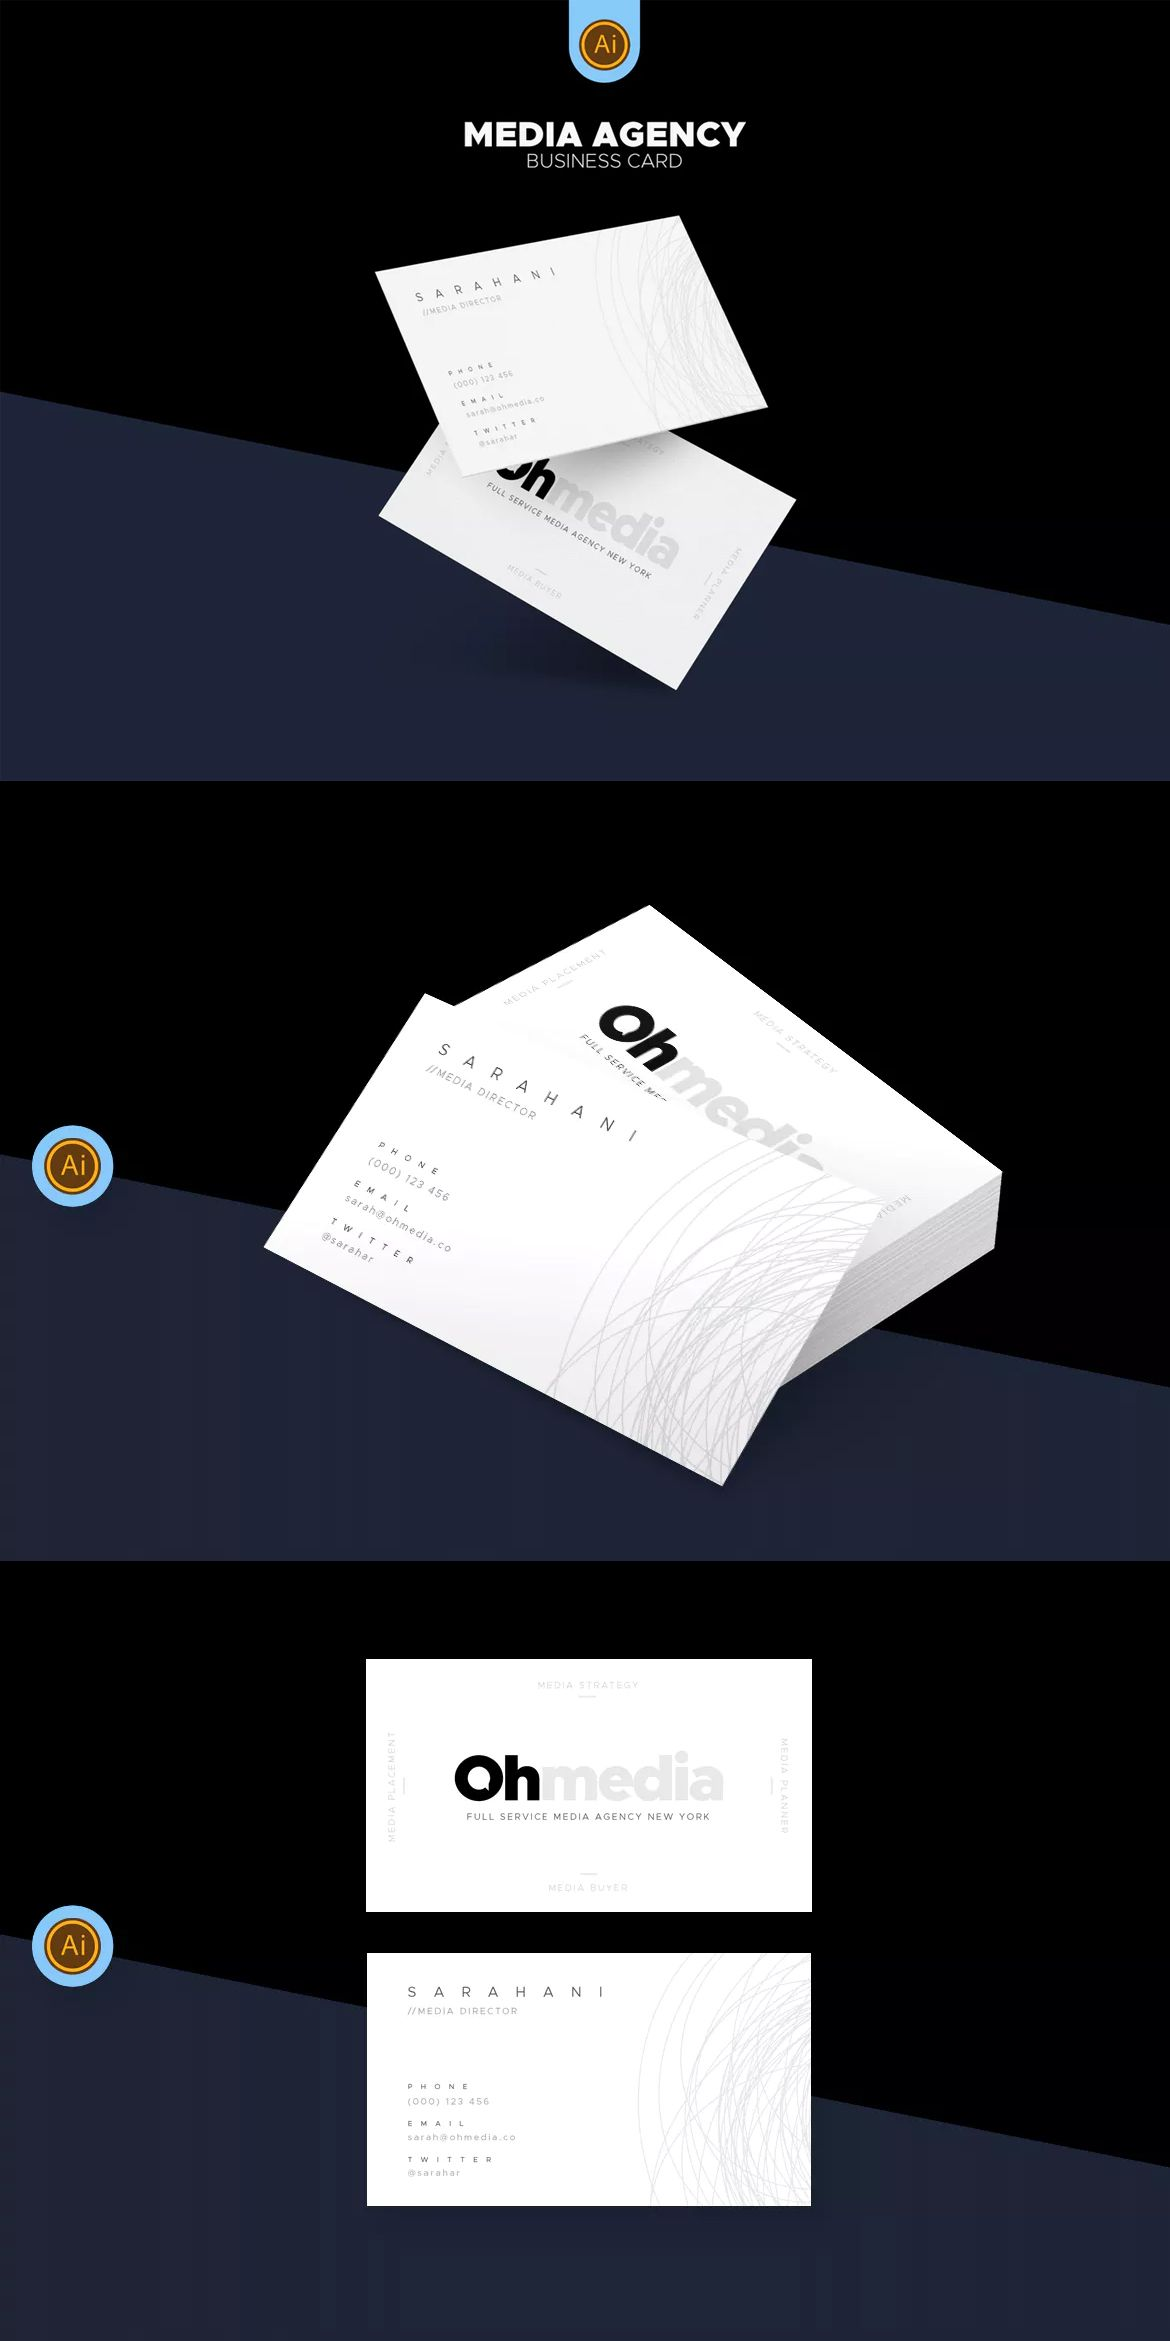 Media agency business card ai eps unlimiteddownloads business media agency business card ai eps unlimiteddownloads flashek